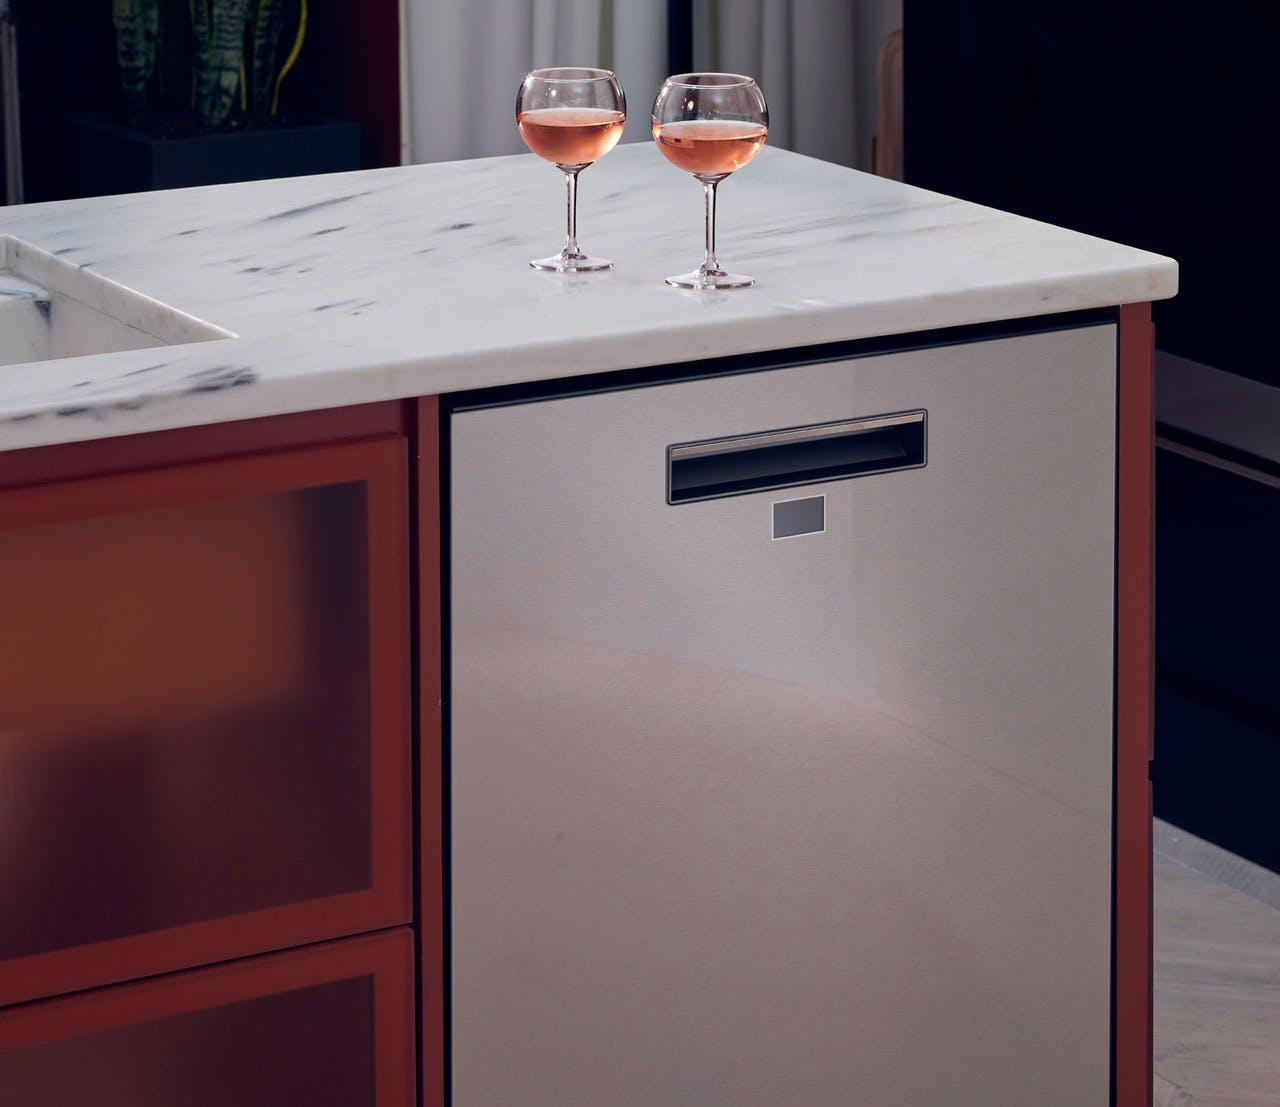 Modern Glass dishwasher with wine glasses above on counter